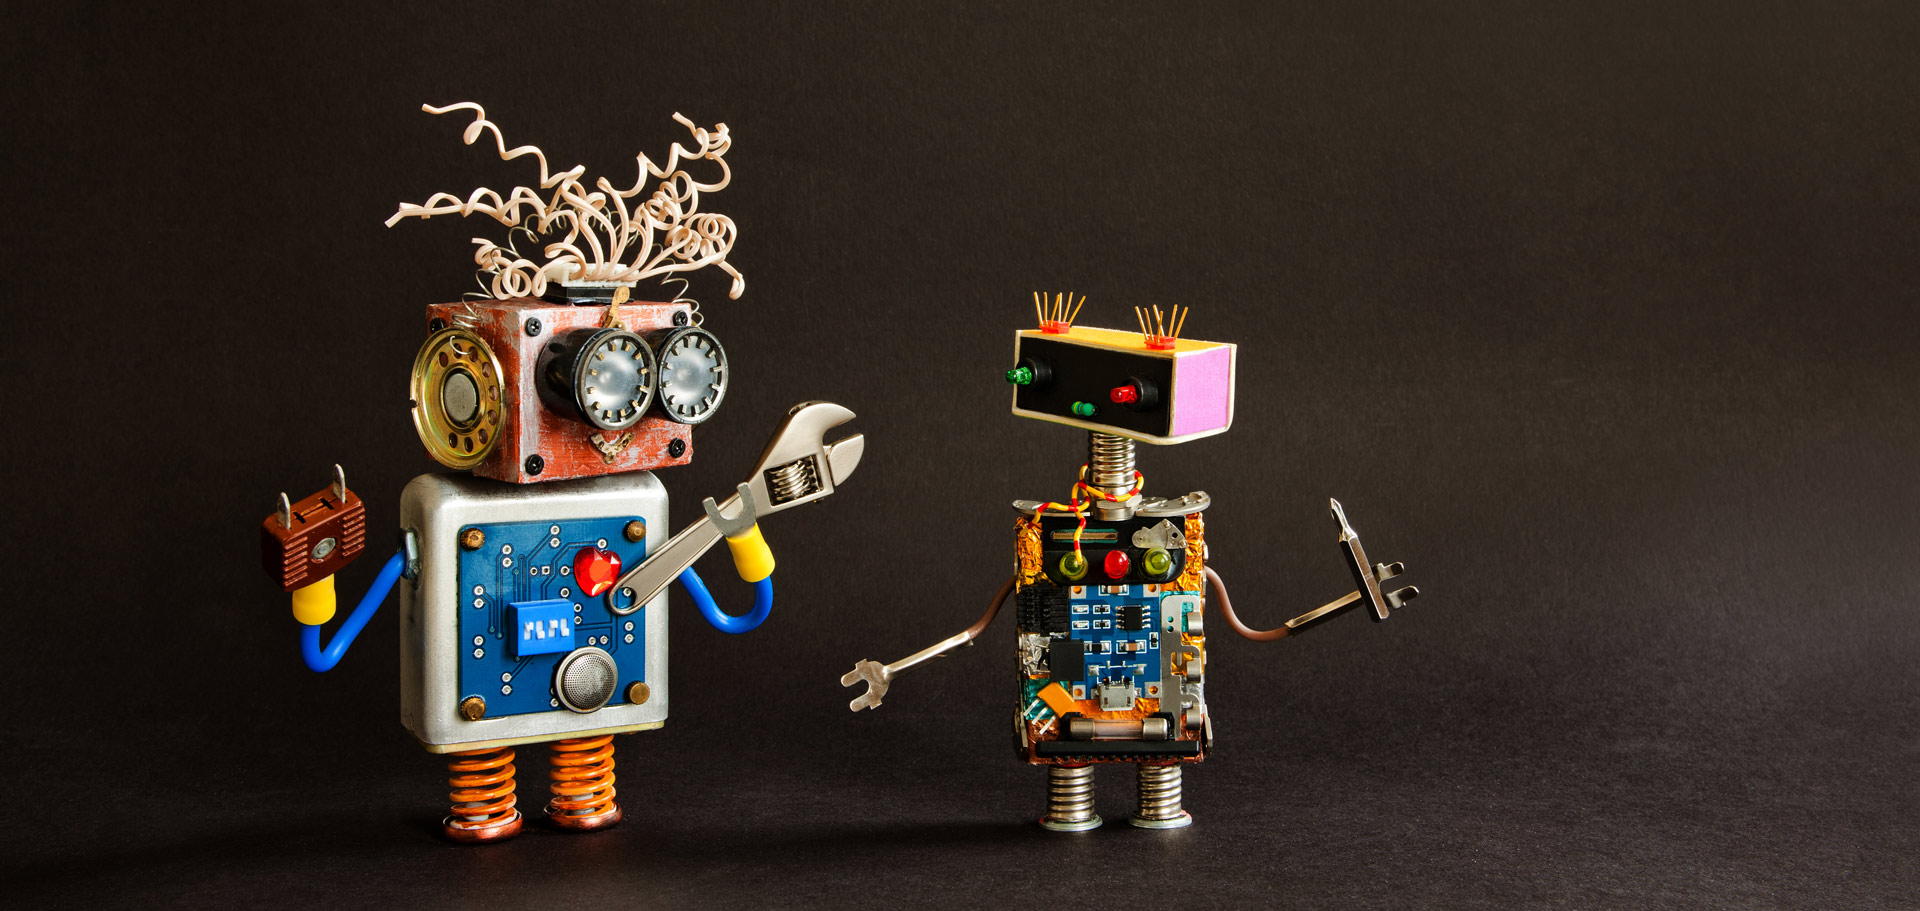 Two small robot friends crafted from electronic bits